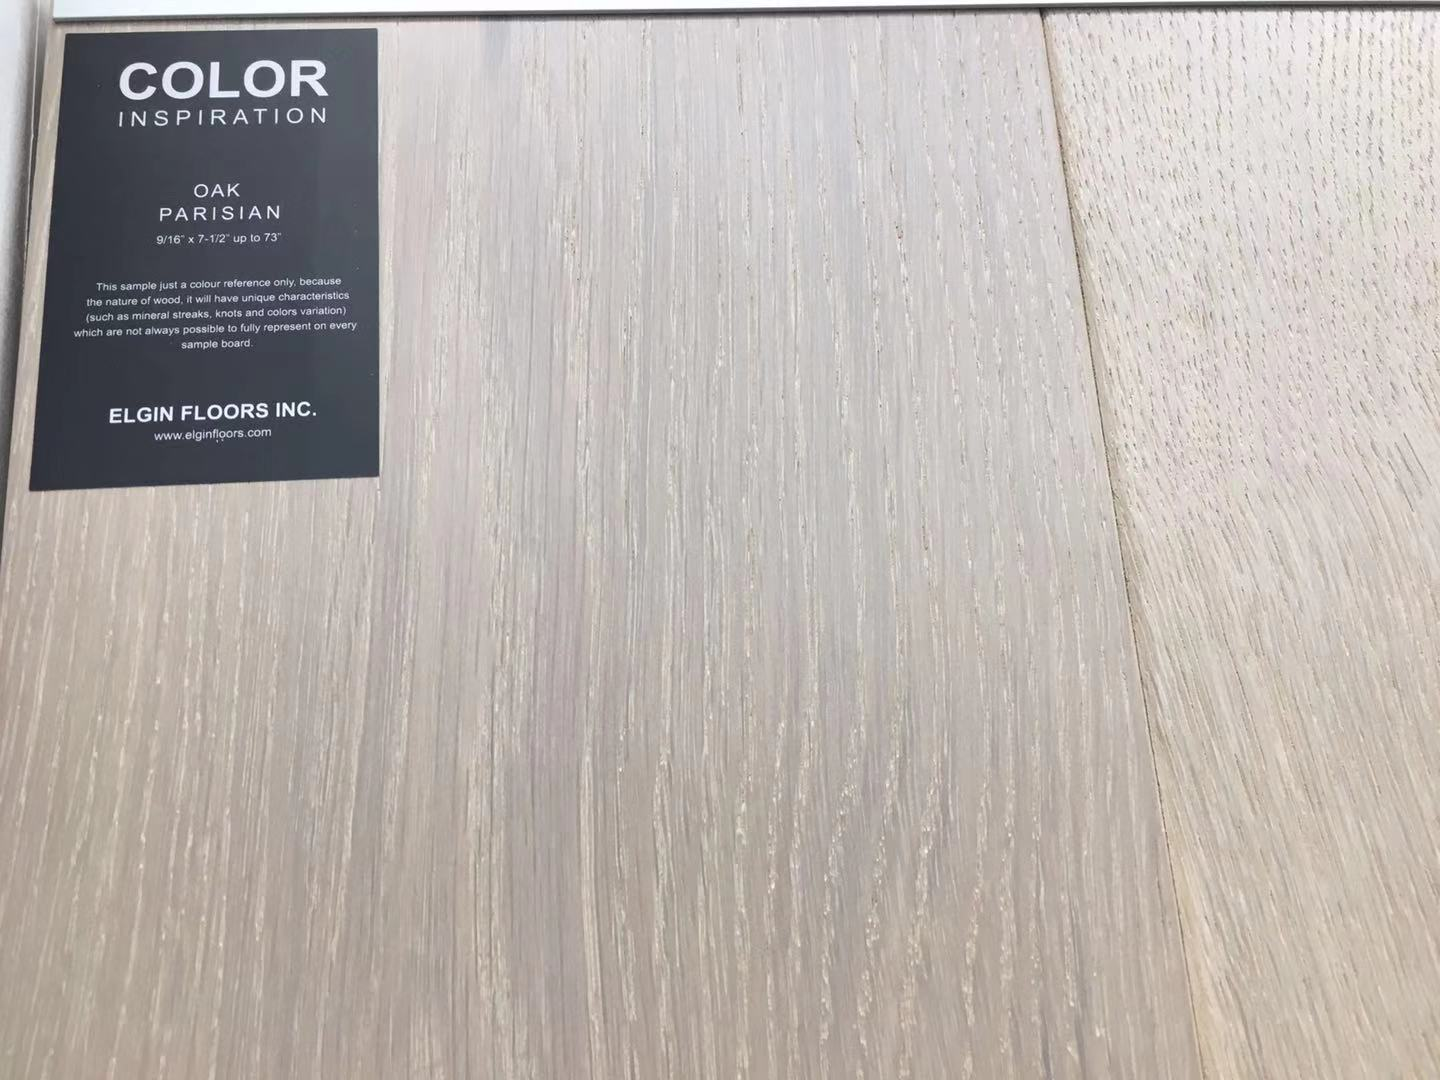 "SPX ORDER 1-2DAYS ENGINEERED HARDWOOD 7-1/2"" WIDTH 2MM TOP LAYER  OAK PARISIAN $4.26/SF 23.33SF/BOX $99.49/BOX - Home Idol Home Improvement Outlet"